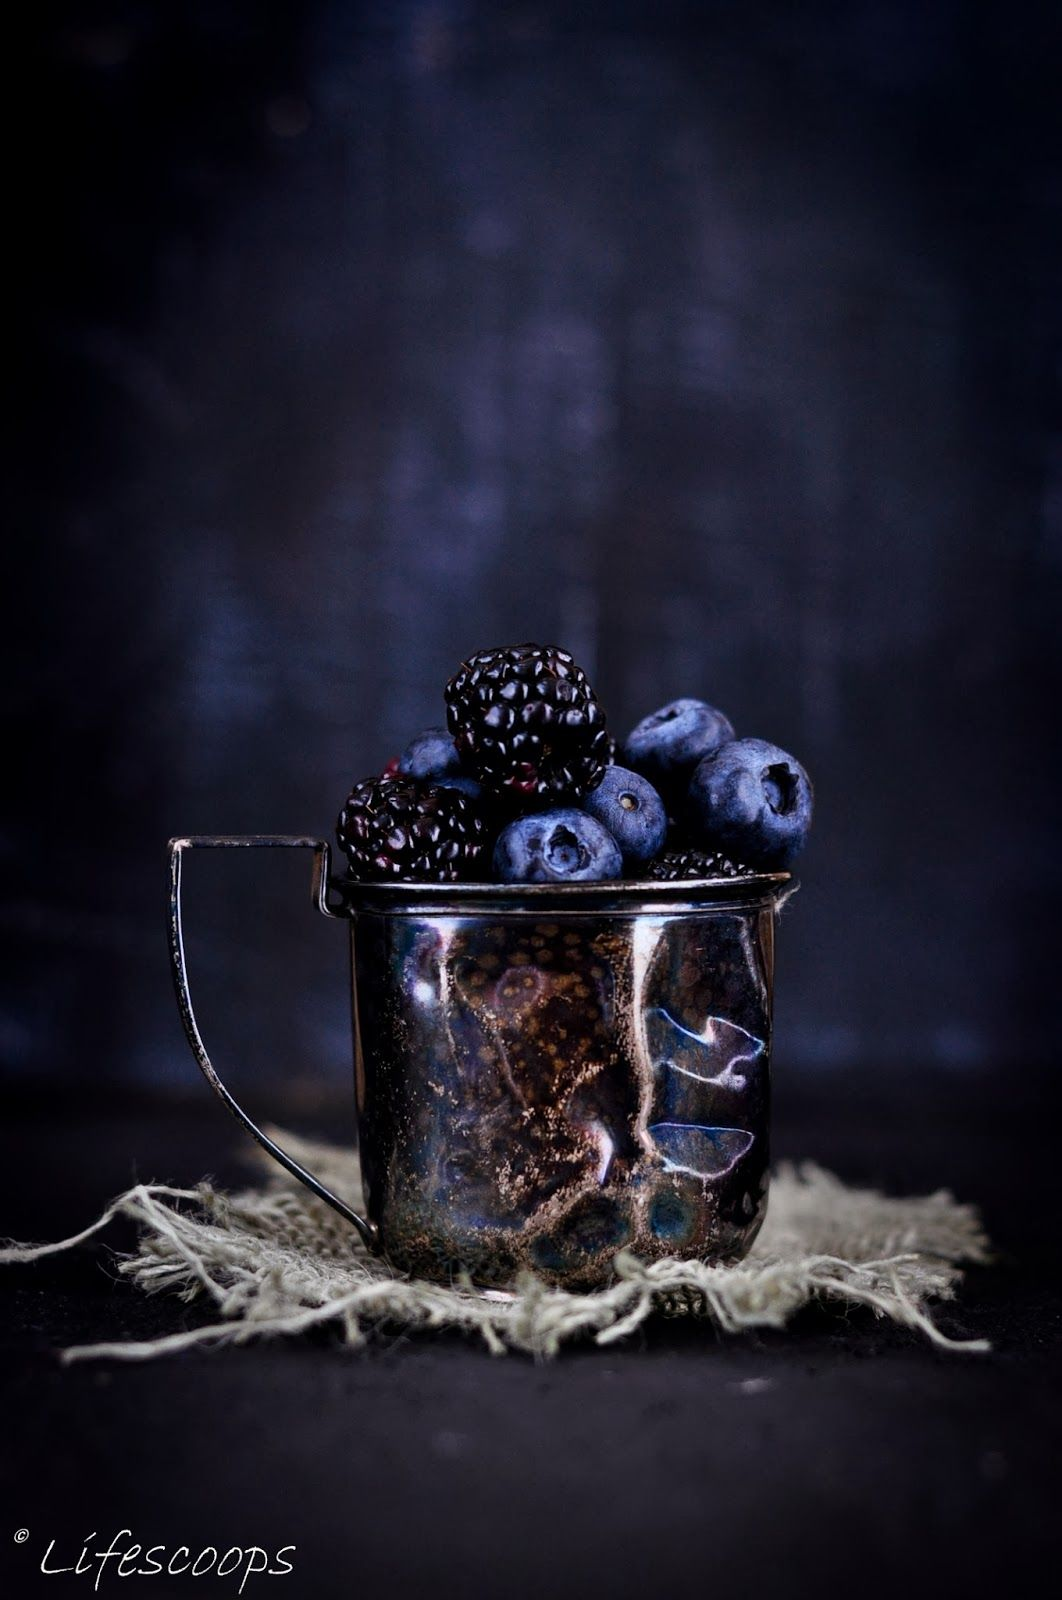 blackberries and blueberries from the